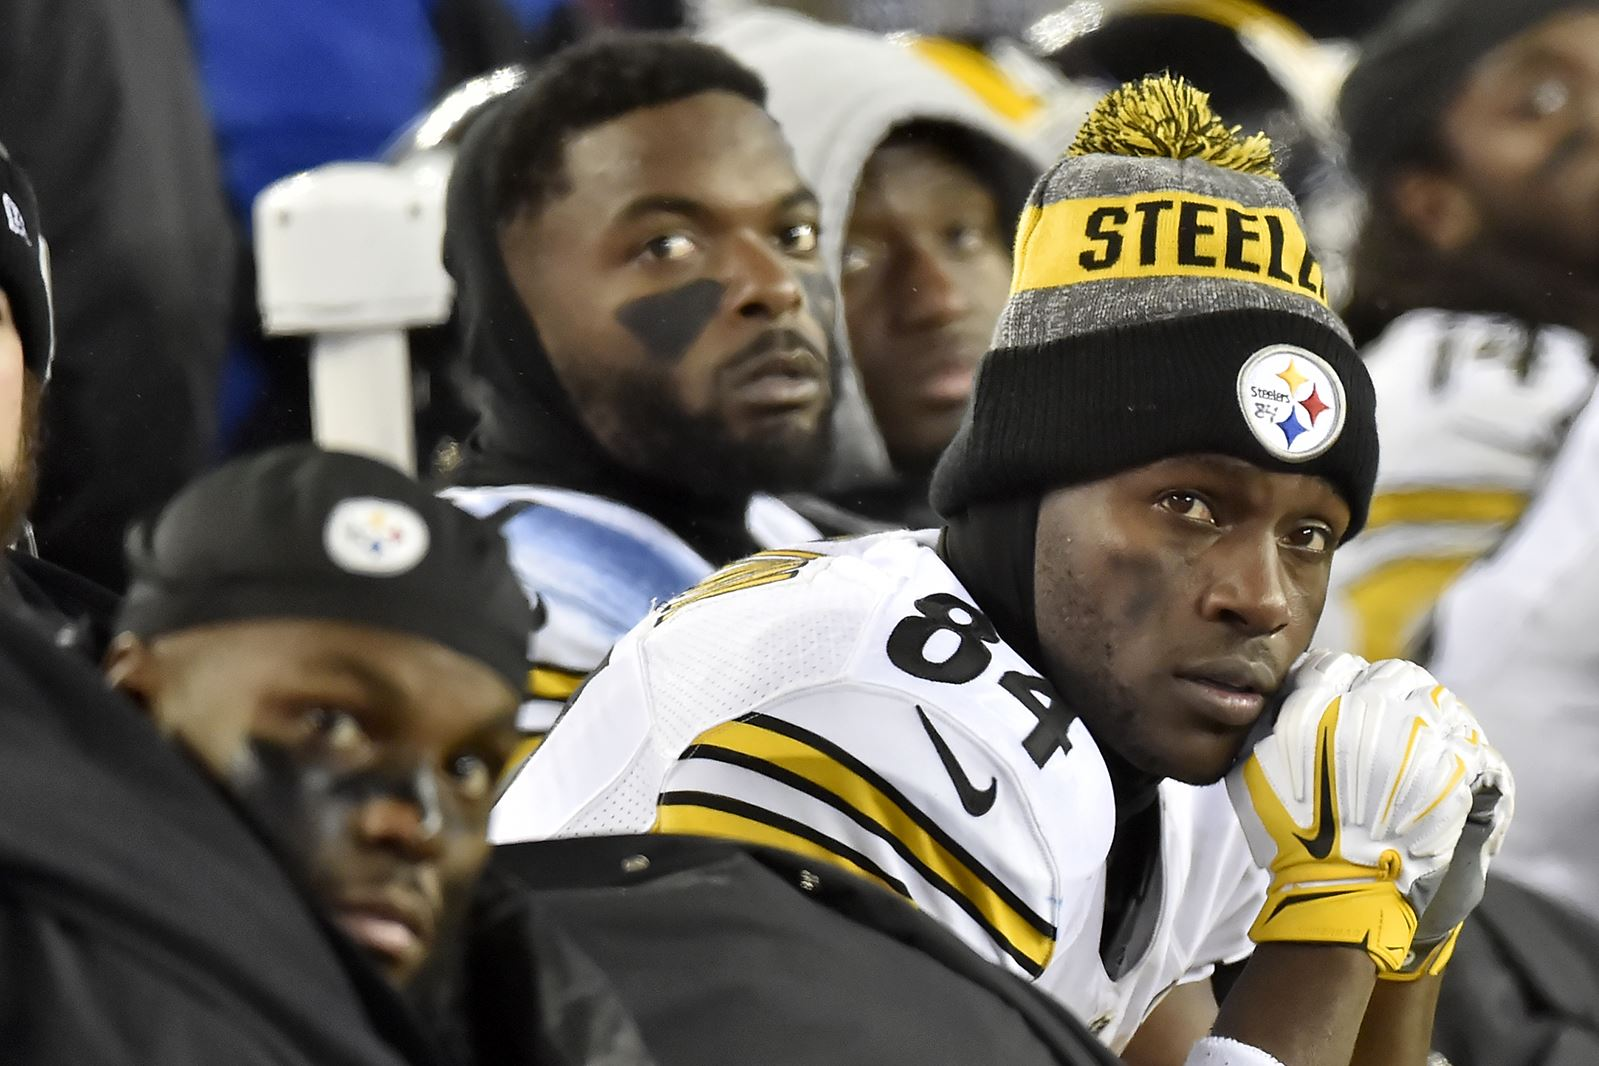 Pittsburgh Steelers star Antonio Brown fined for Facebook Live video